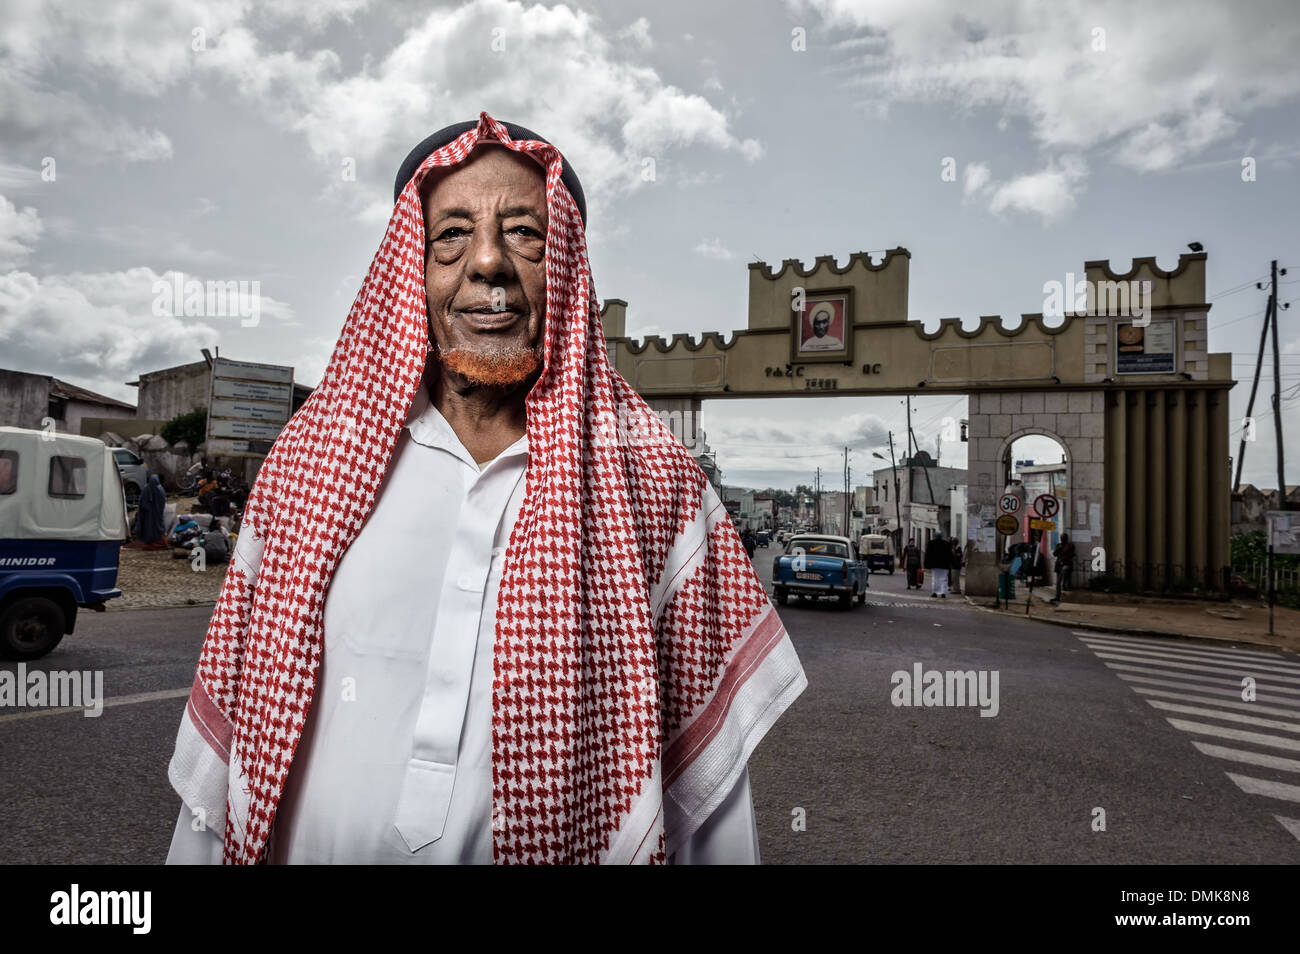 Muslim man wearing traditional arab dress, Harar, Ethiopia, Africa - Stock Image